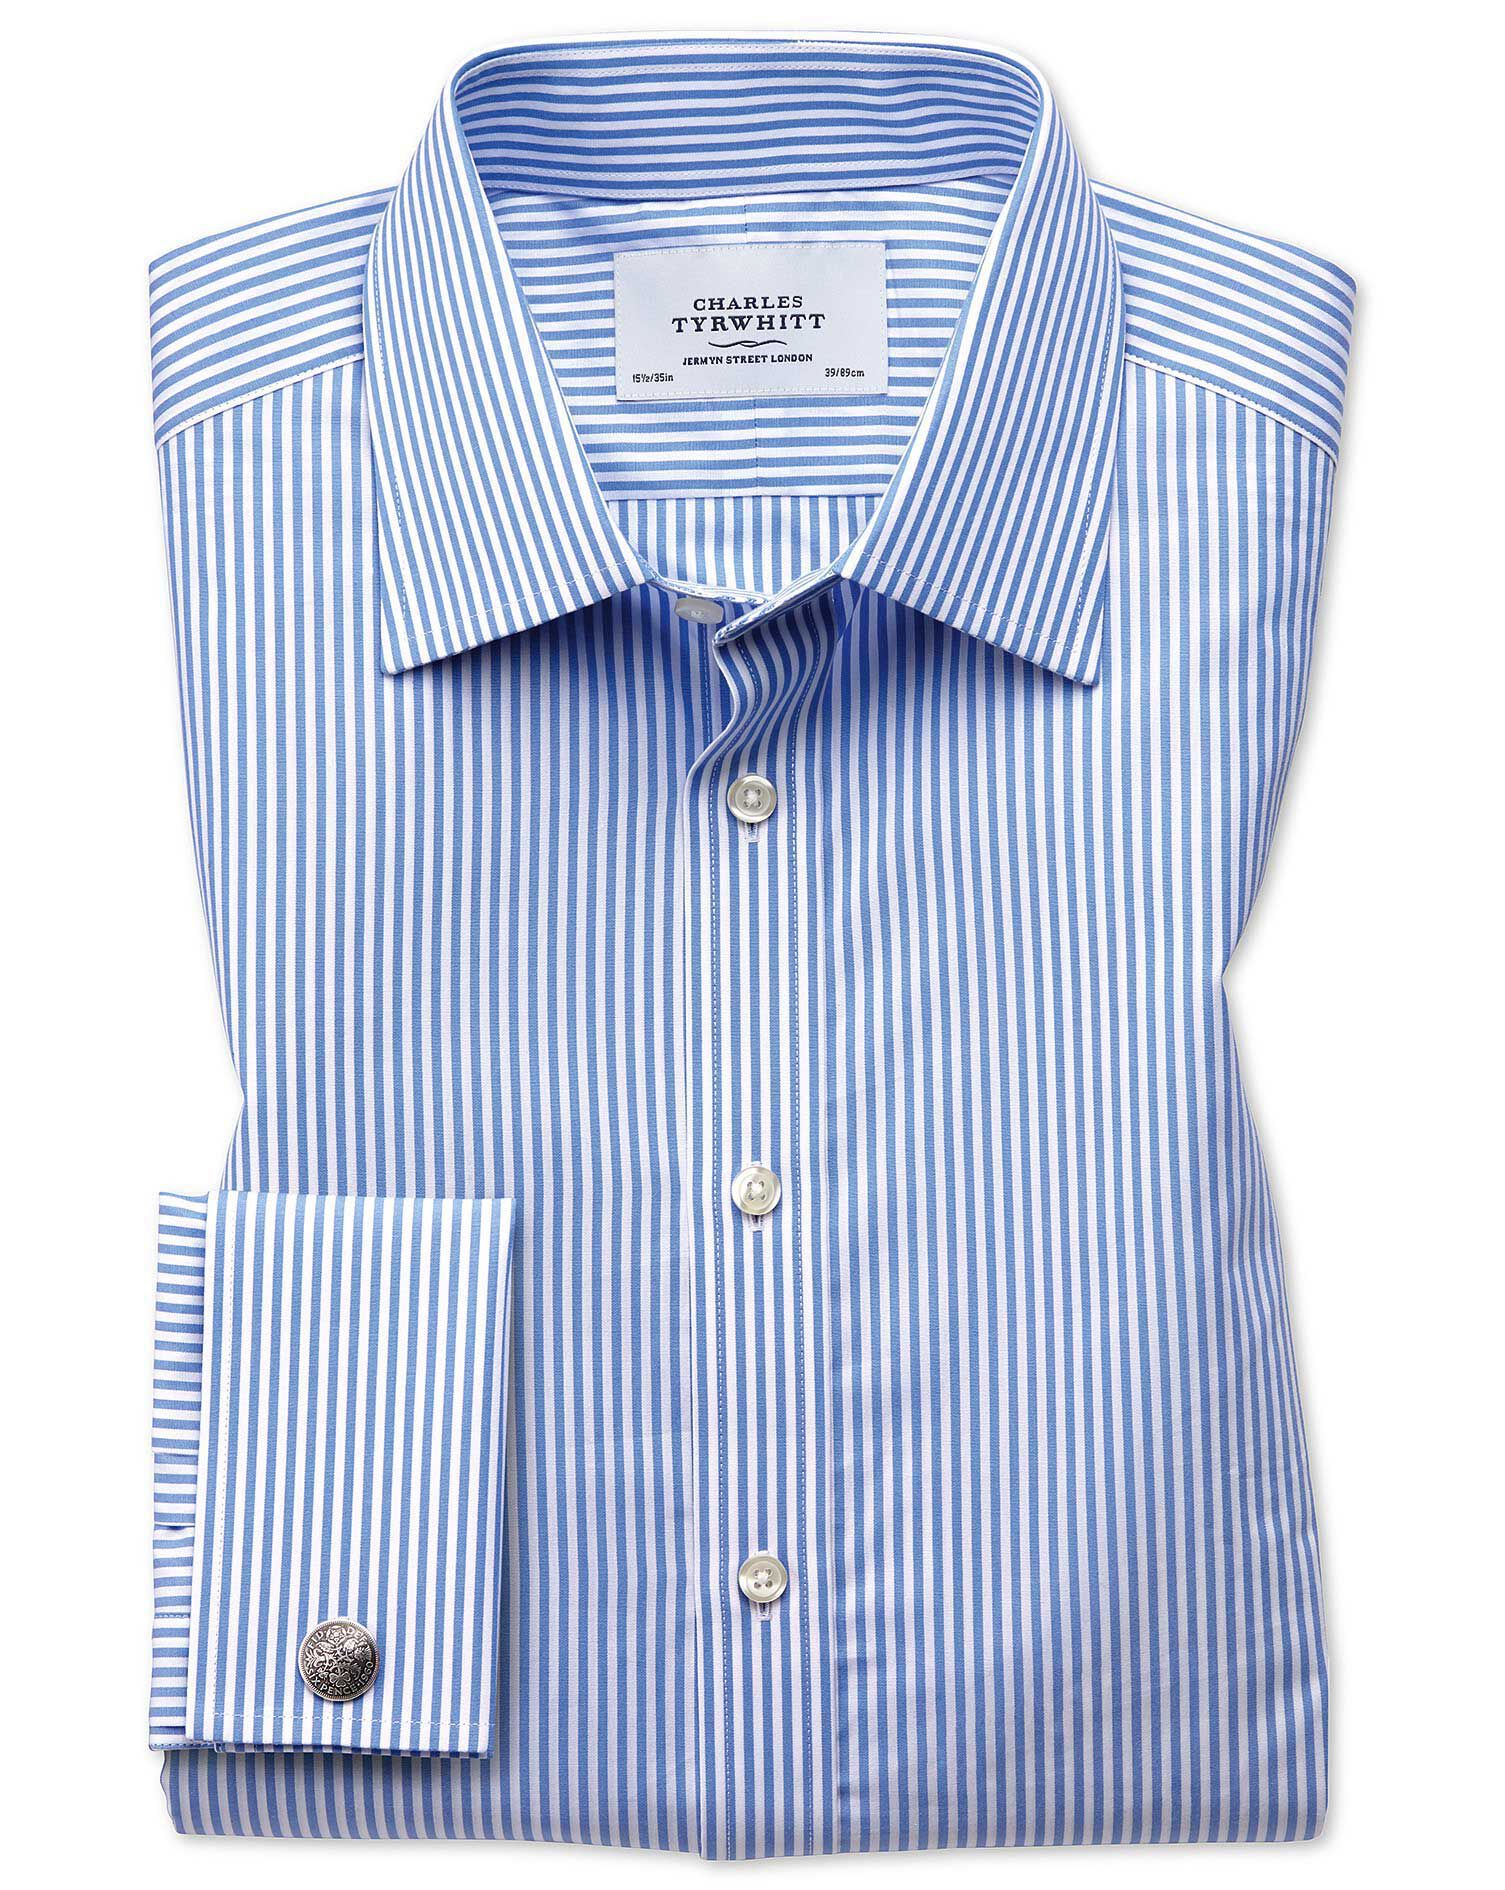 Slim Fit Bengal Stripe Sky Blue Cotton Formal Shirt Double Cuff Size 17.5/35 by Charles Tyrwhitt